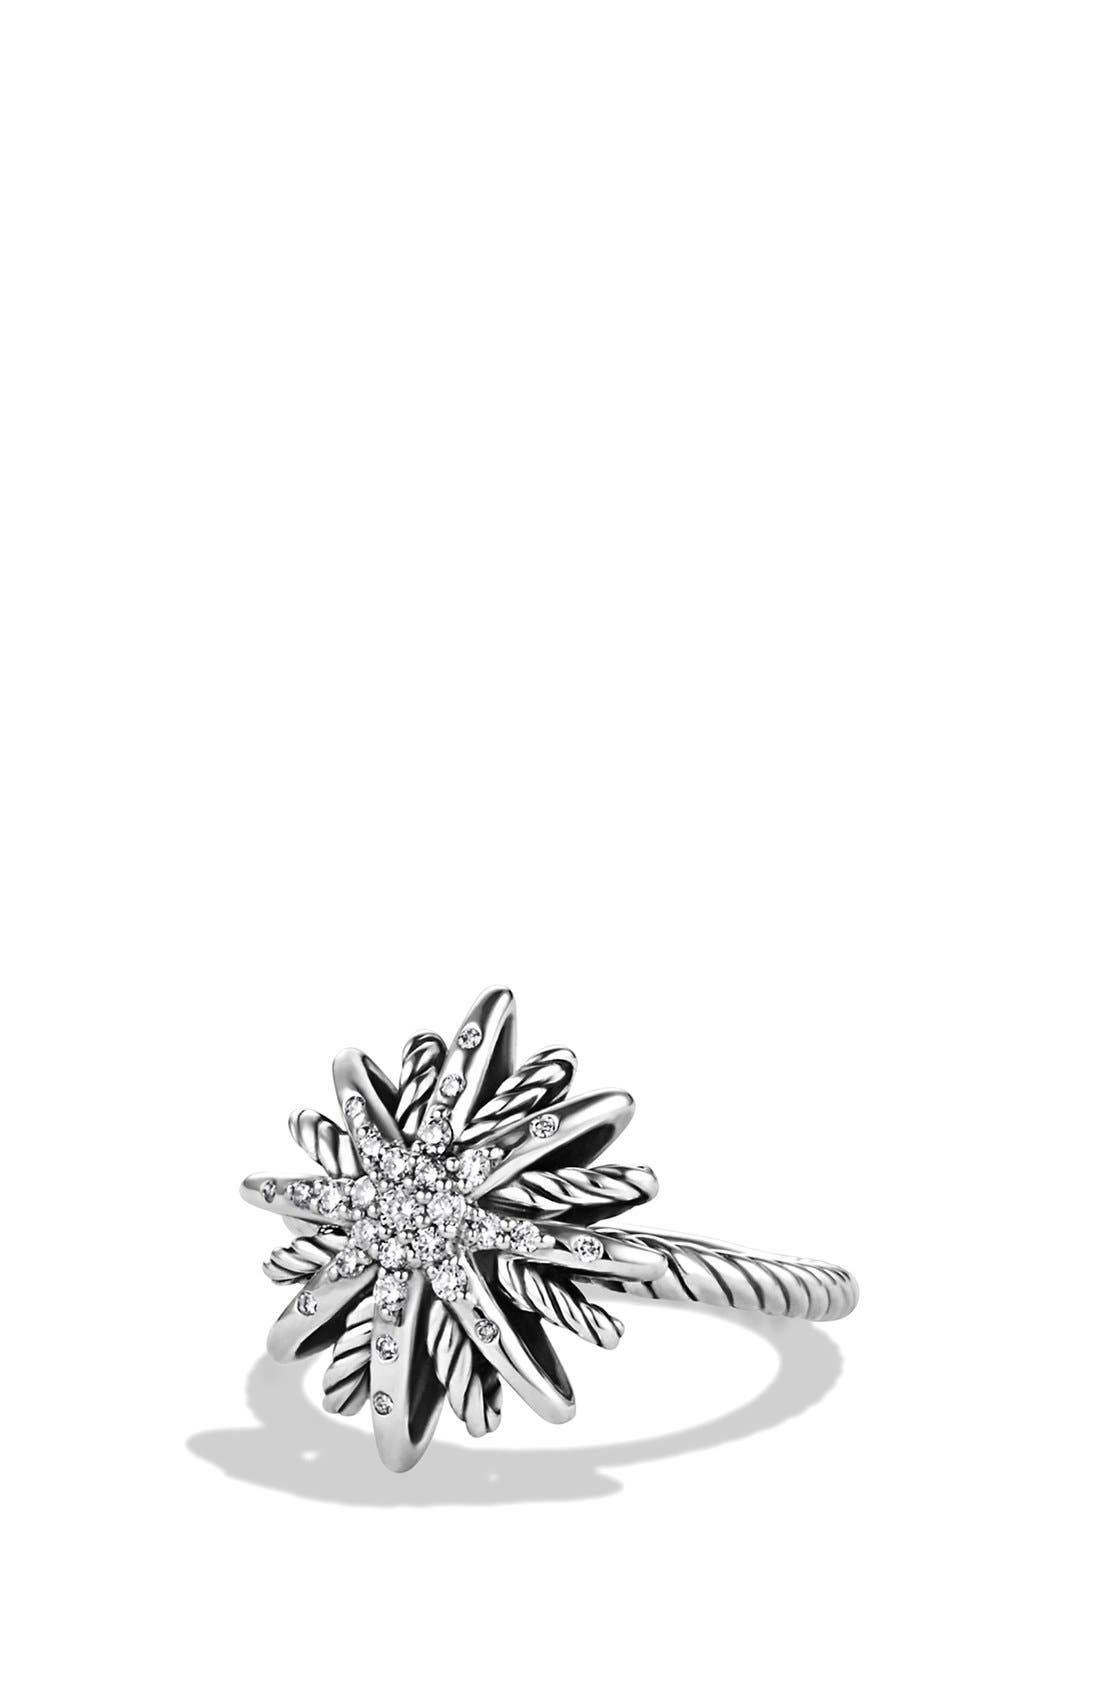 'Starburst' Ring with Diamonds,                             Main thumbnail 1, color,                             040